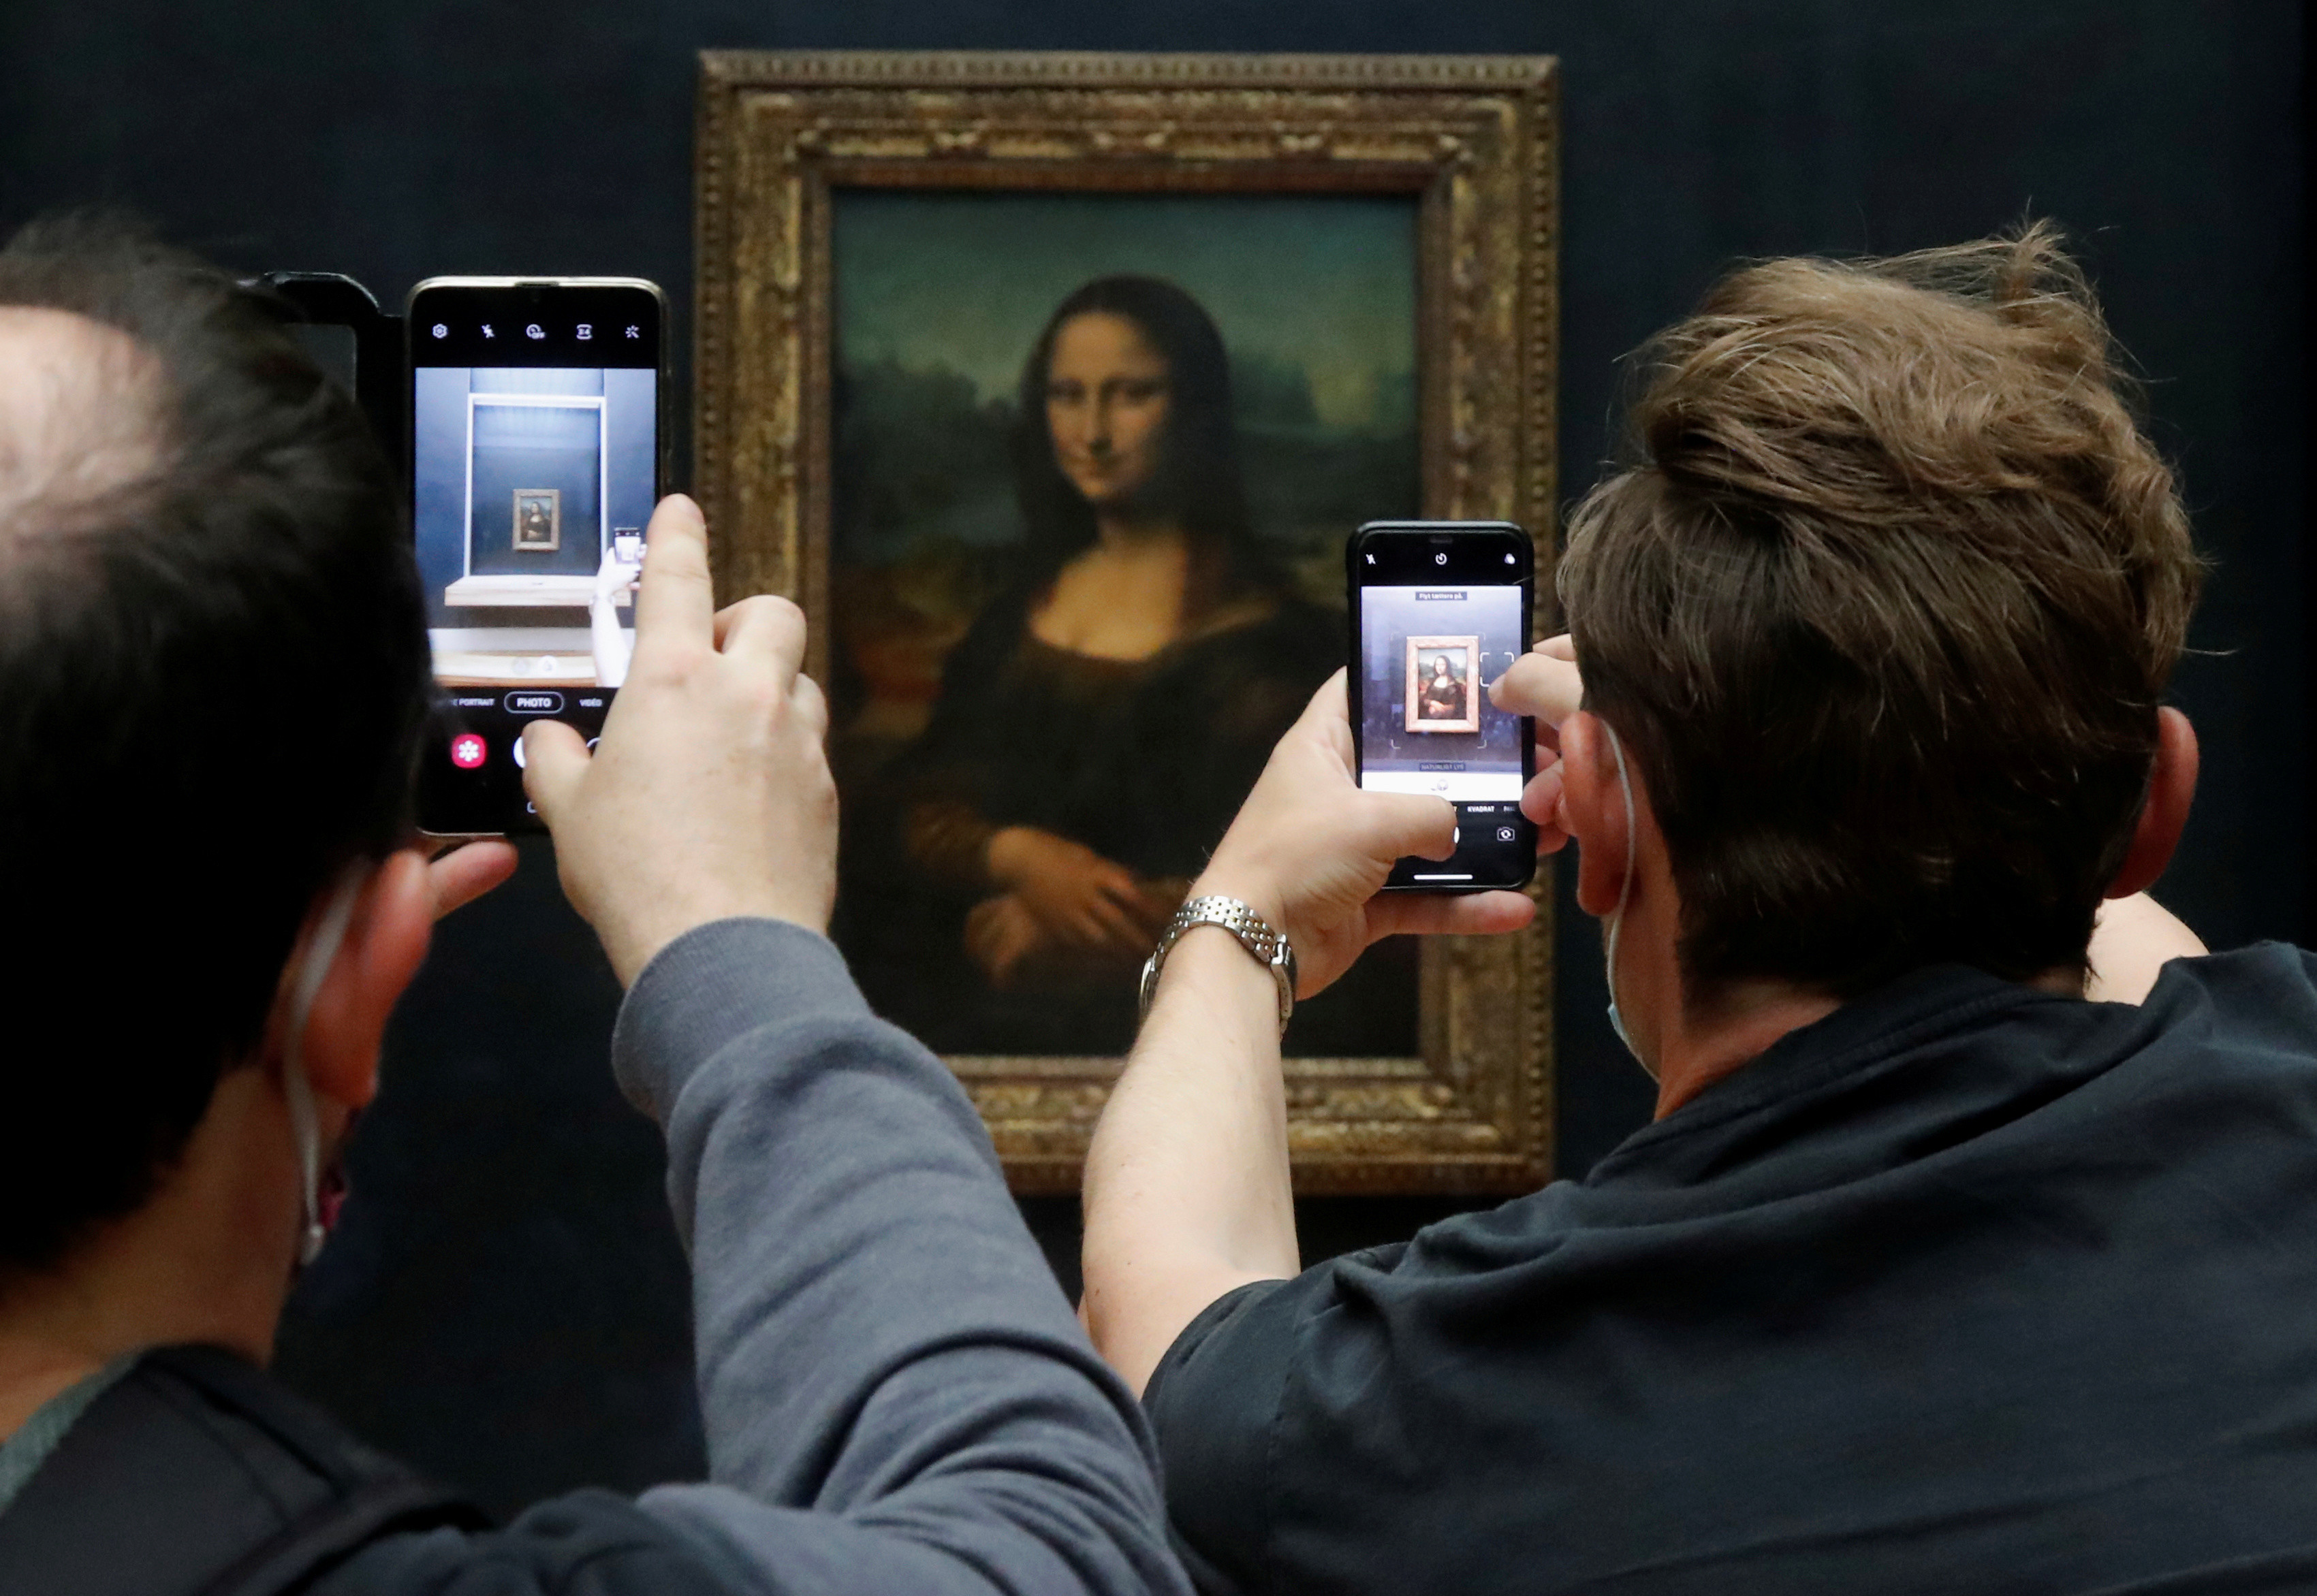 """Visitors take pictures of the painting """"Mona Lisa"""" (La Joconde) by Leonardo da Vinci at the Louvre museum in Paris as the museum reopens its doors to the public after an almost four-month closure due to the coronavirus disease (COVID-19) outbreak in France, July 6, 2020. REUTERS/Charles Platiau     TPX IMAGES OF THE DAY - RC2MNH9MZ98D"""